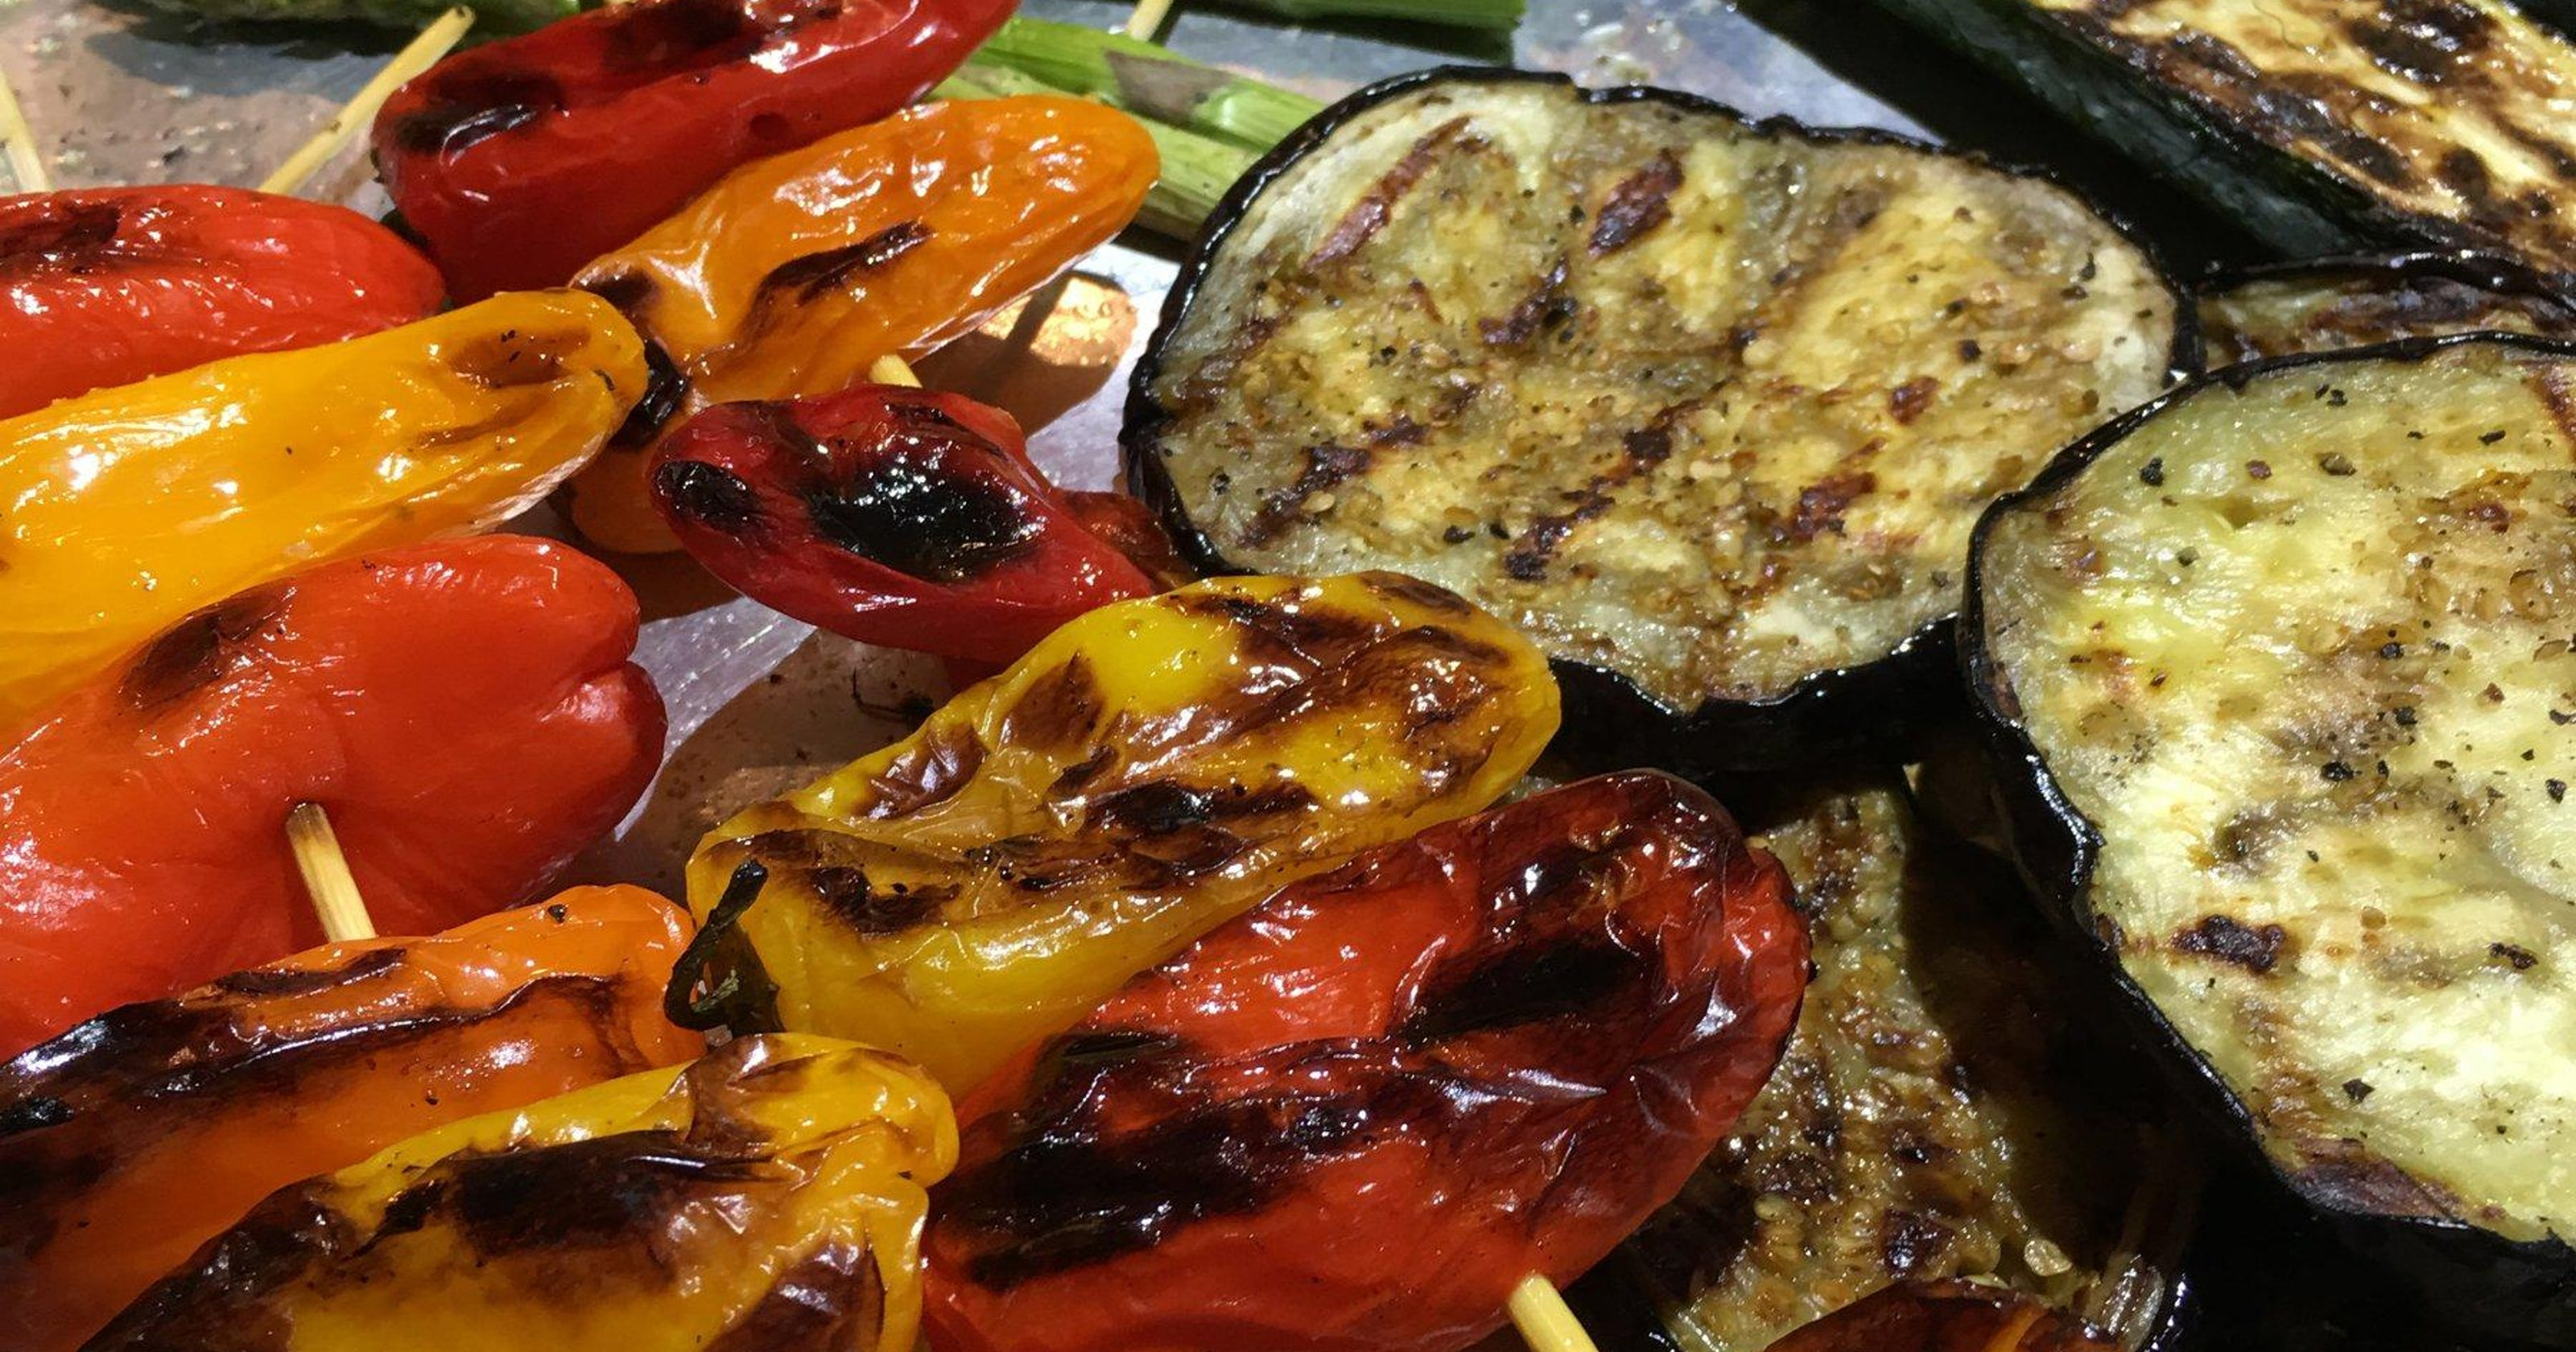 How to grill vegetables successfully